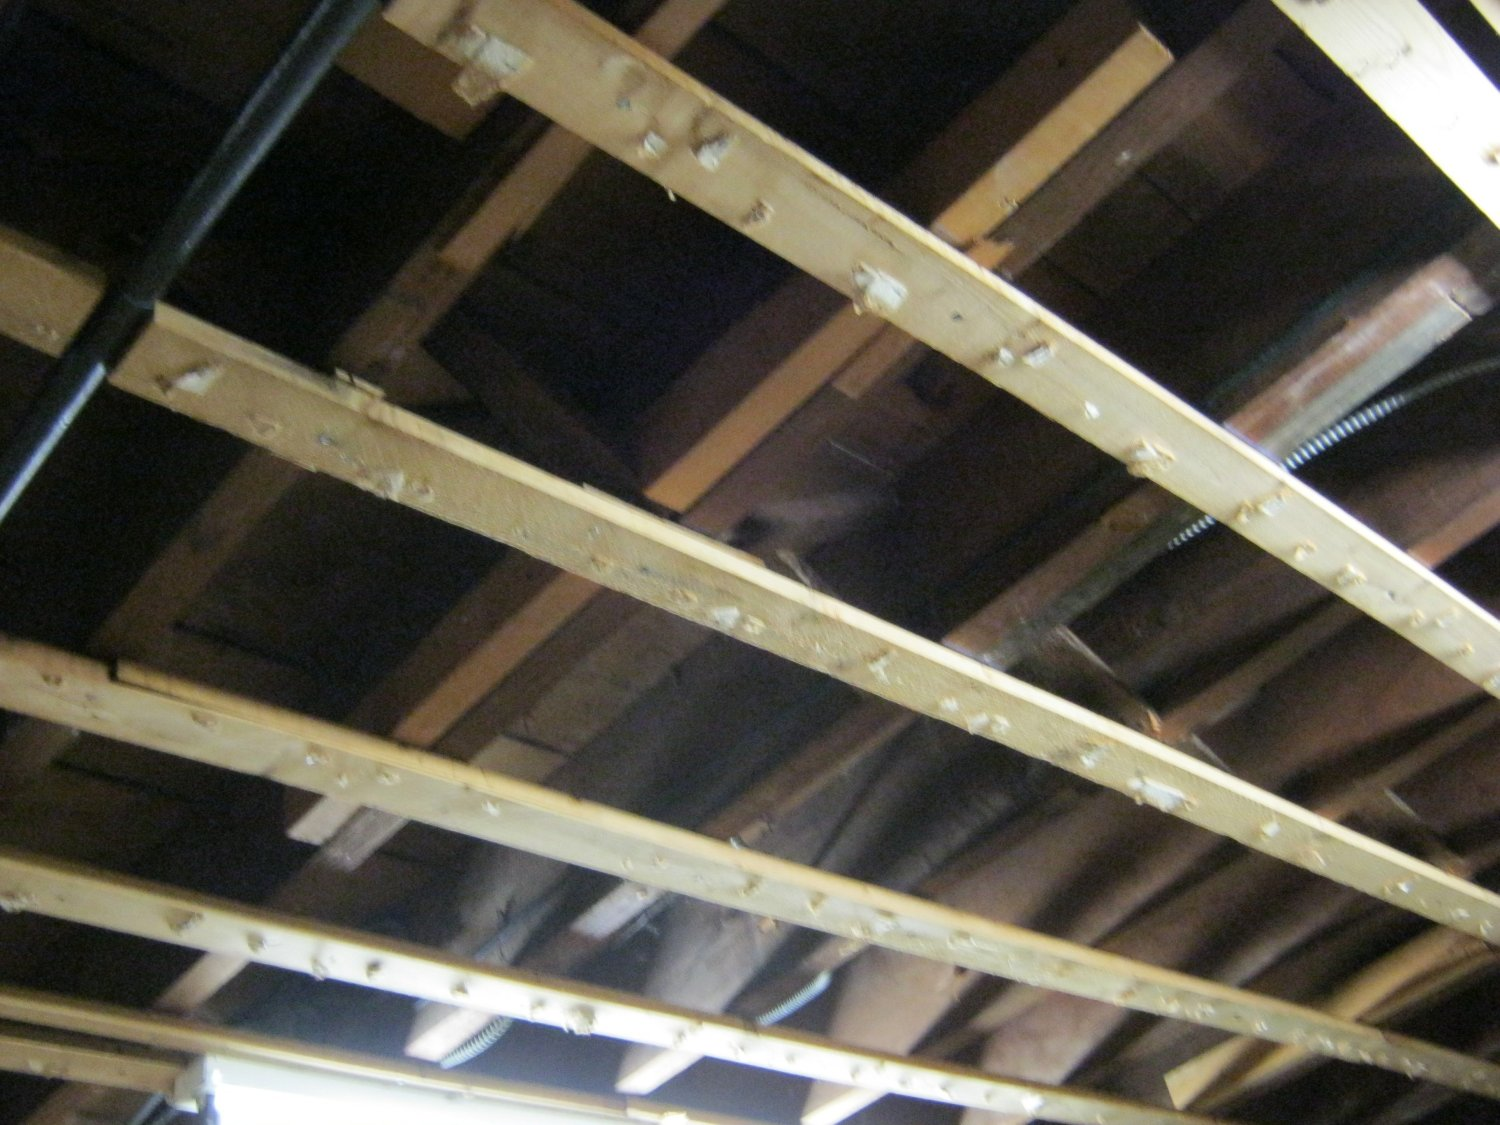 How to hang drywall on a ceiling - Building A Home Theater Step 2 Demolition Man High Def Digest The Bonus View